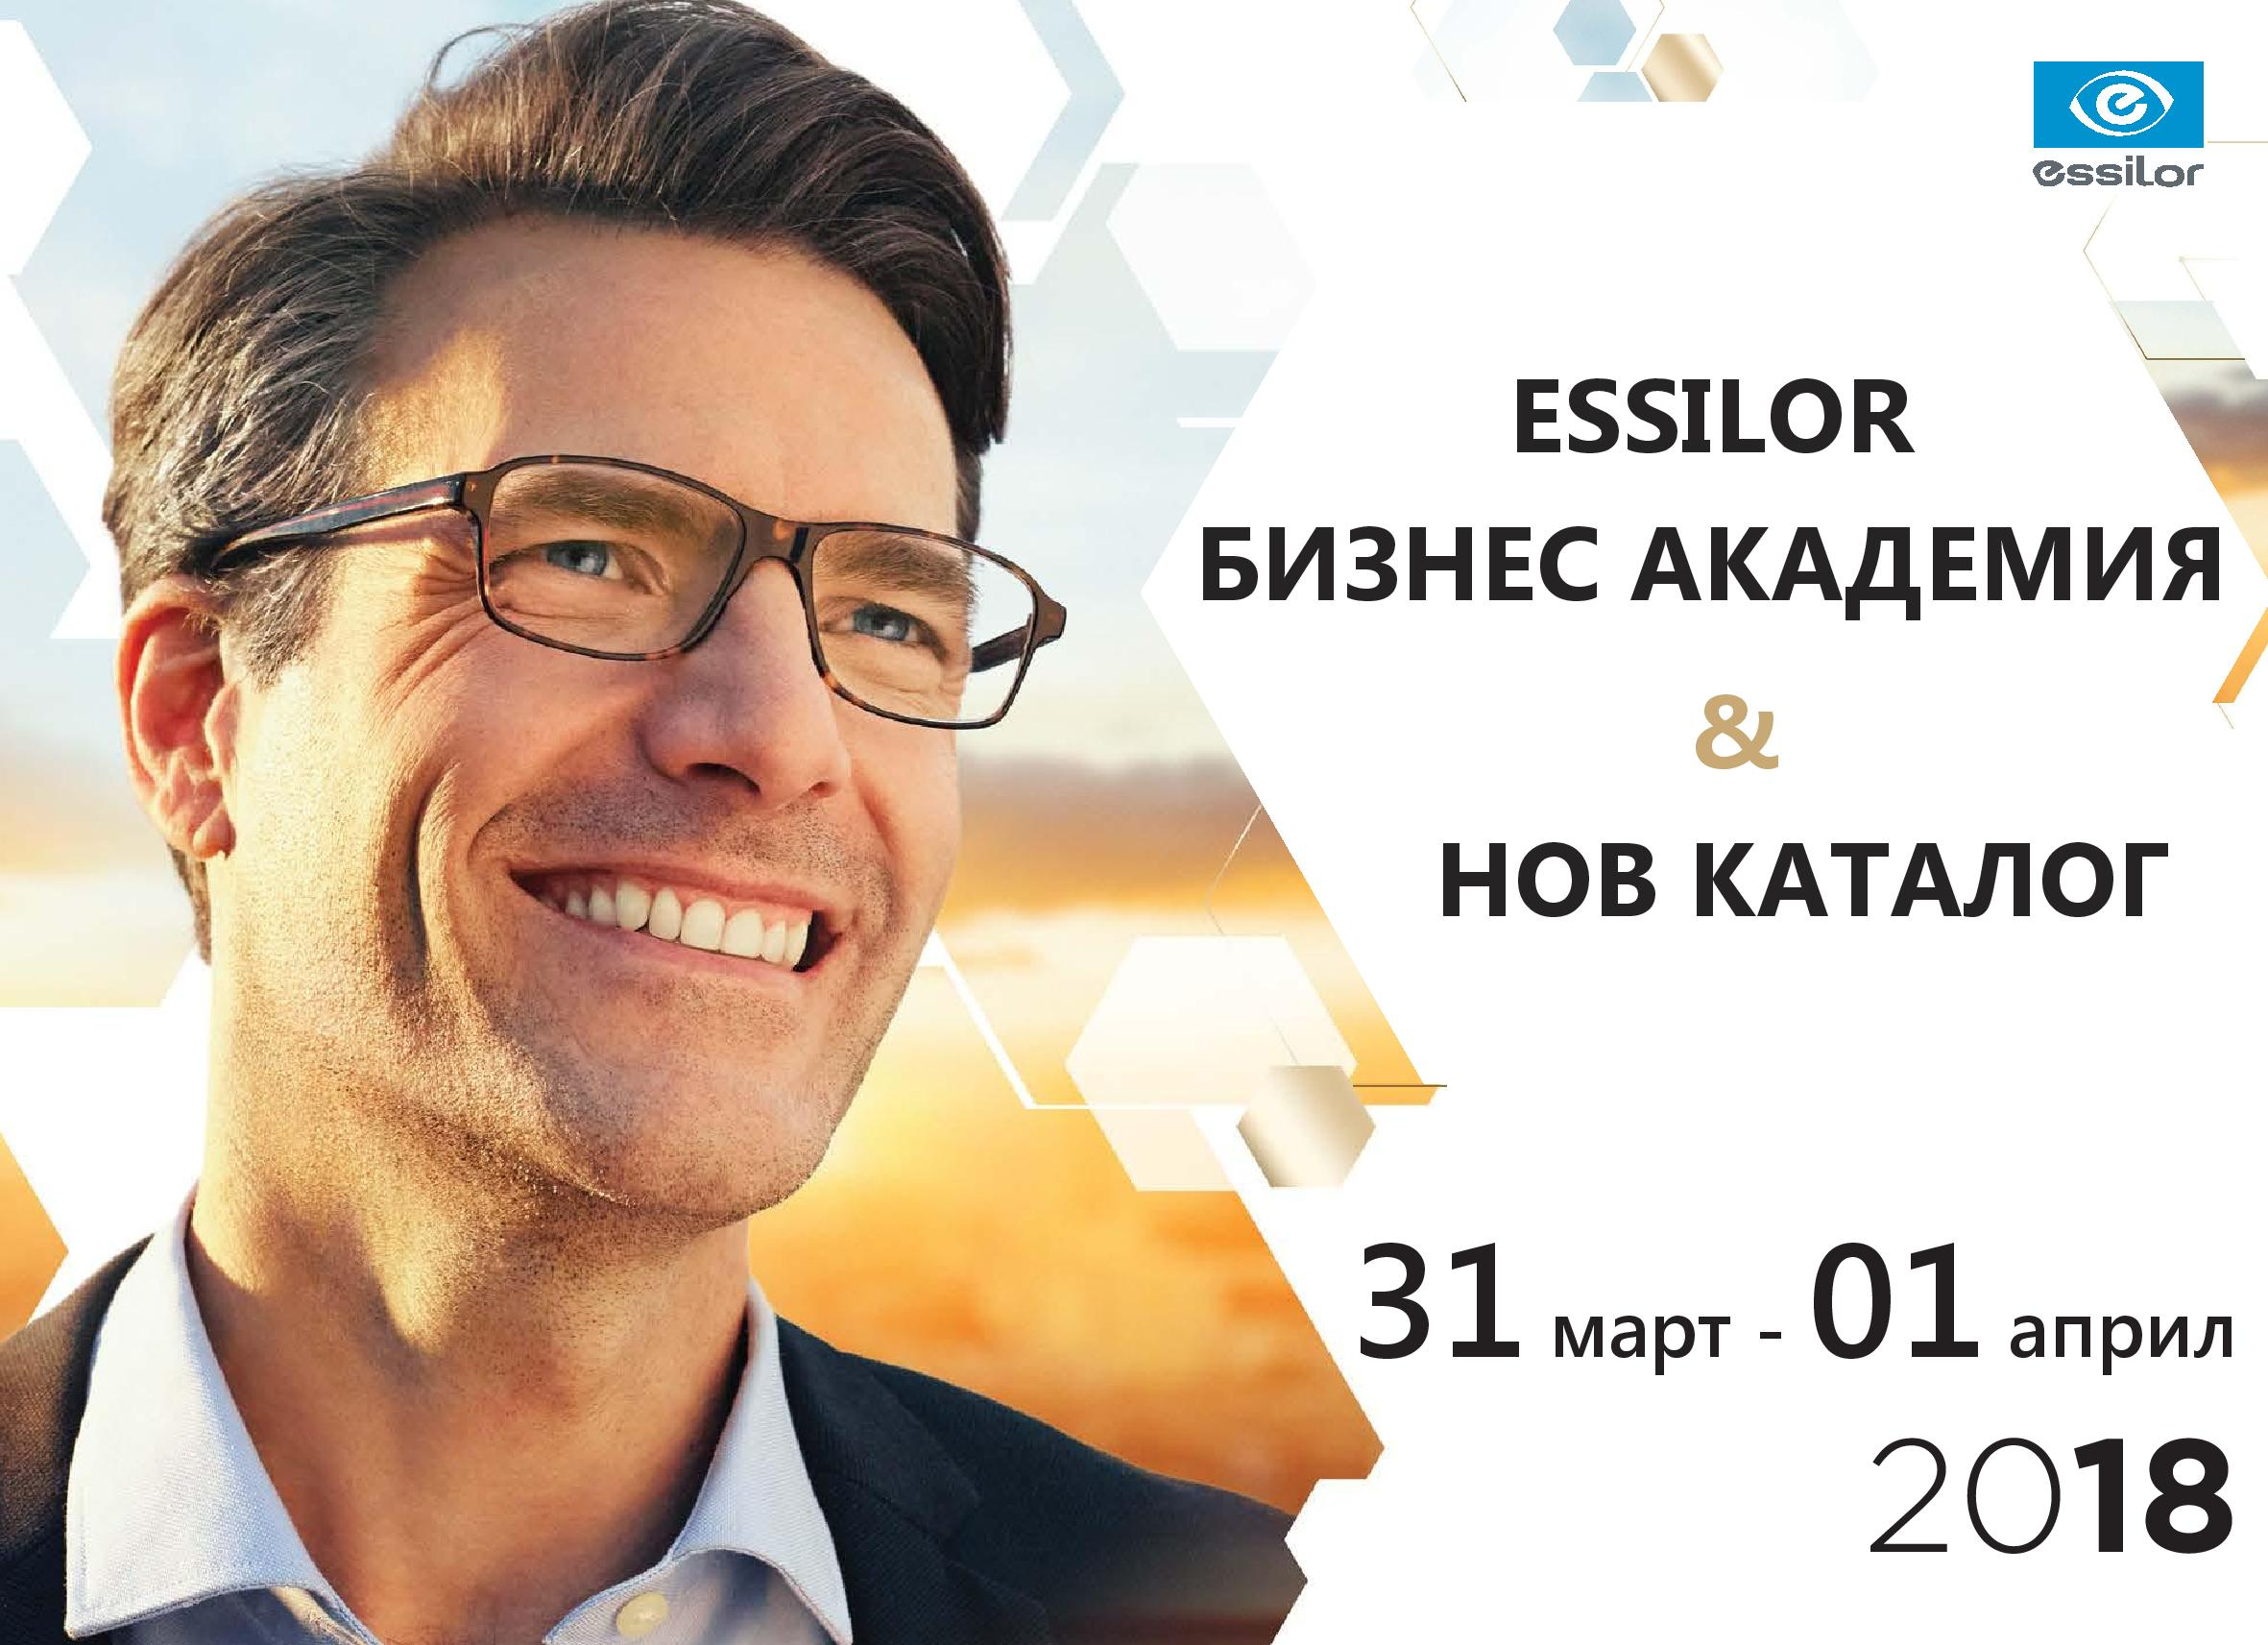 Essilor Business Academy